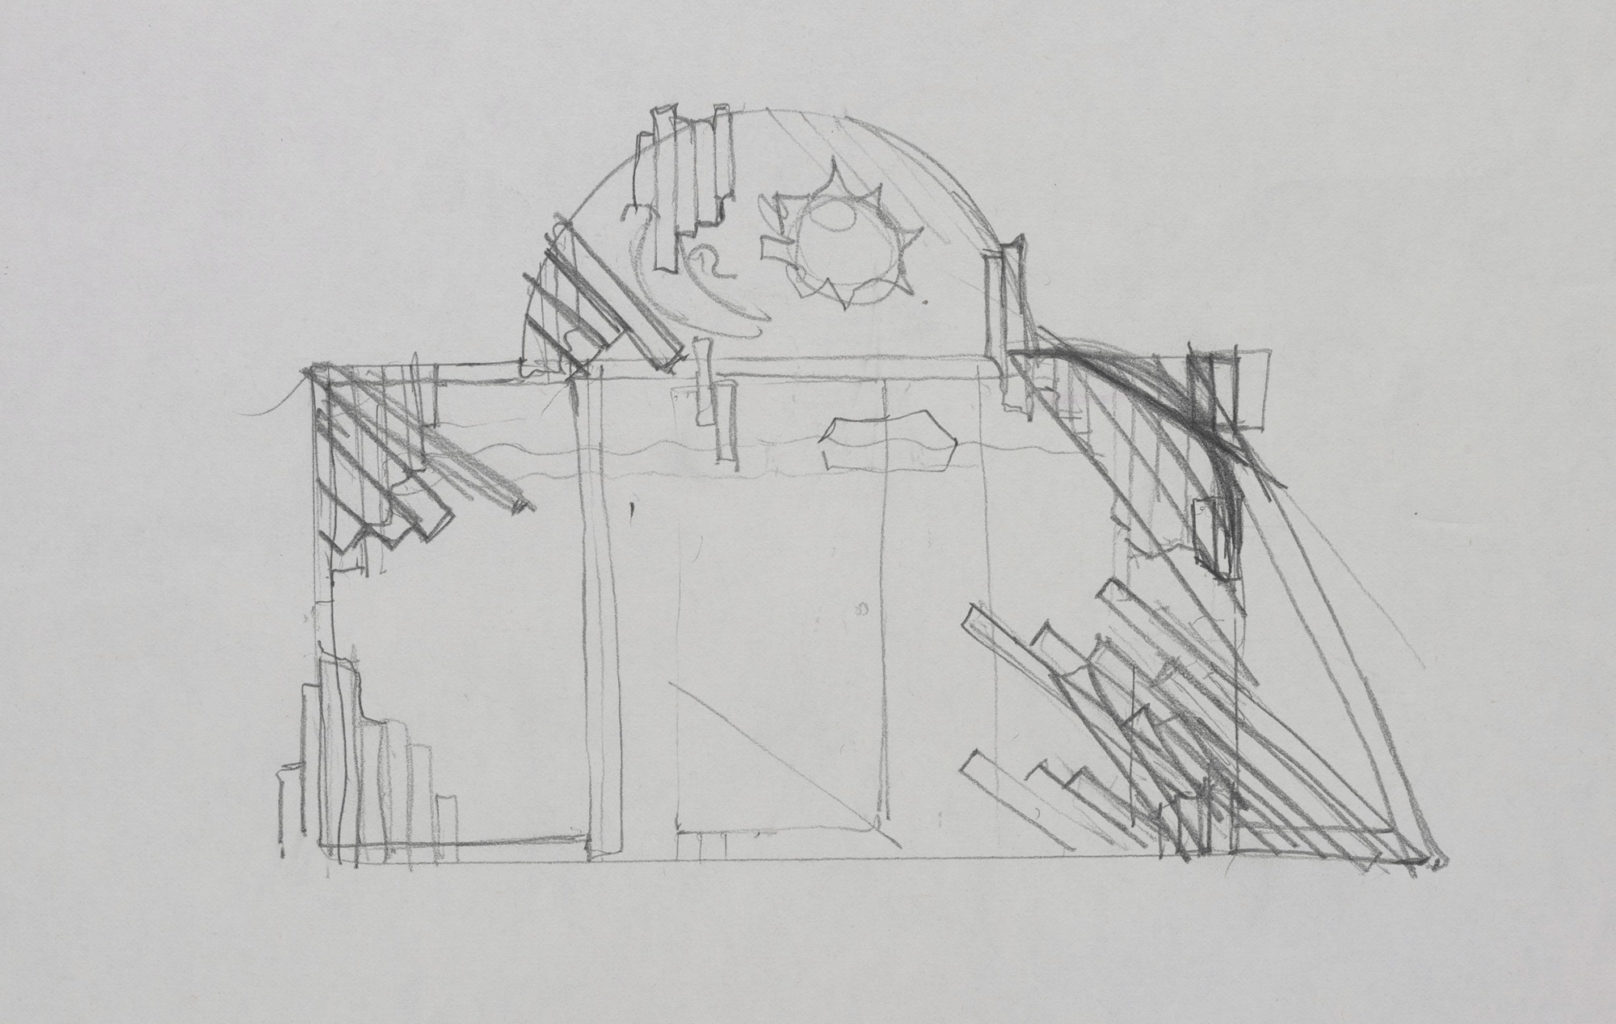 Costume and set designs for Pericles 1984-1985 (copyright Nick Ormerod)